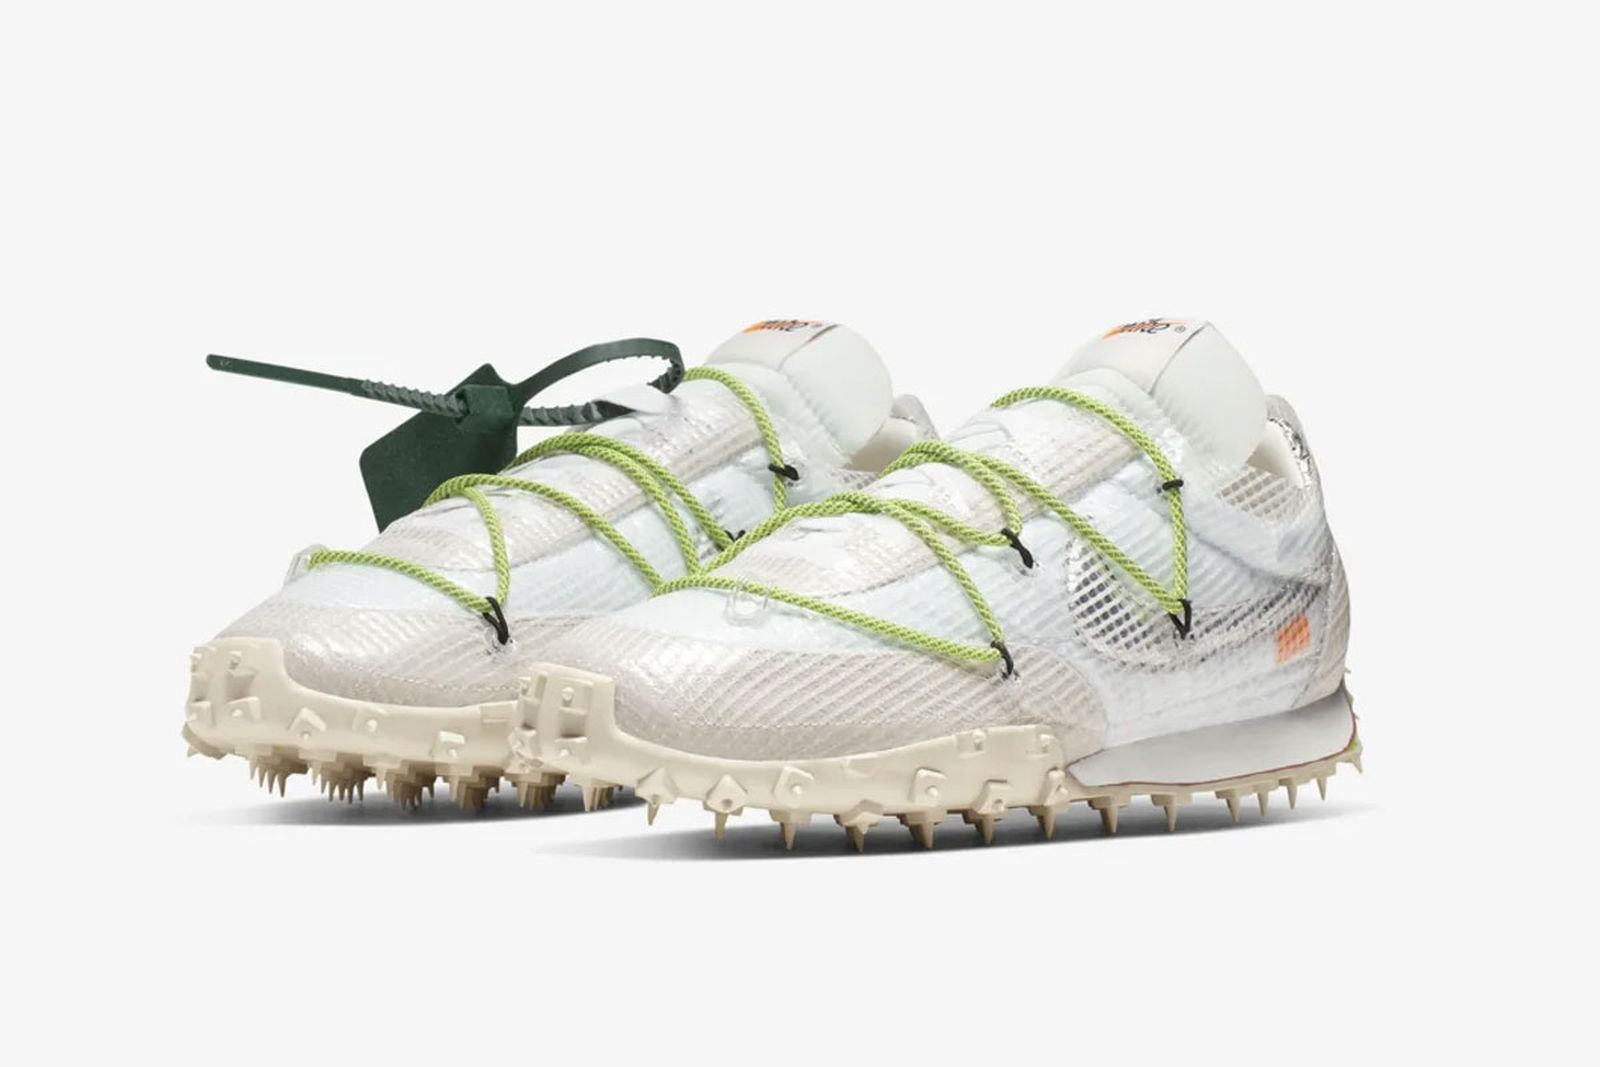 off-white-nike-waffle-racer-sp-release-date-price-11